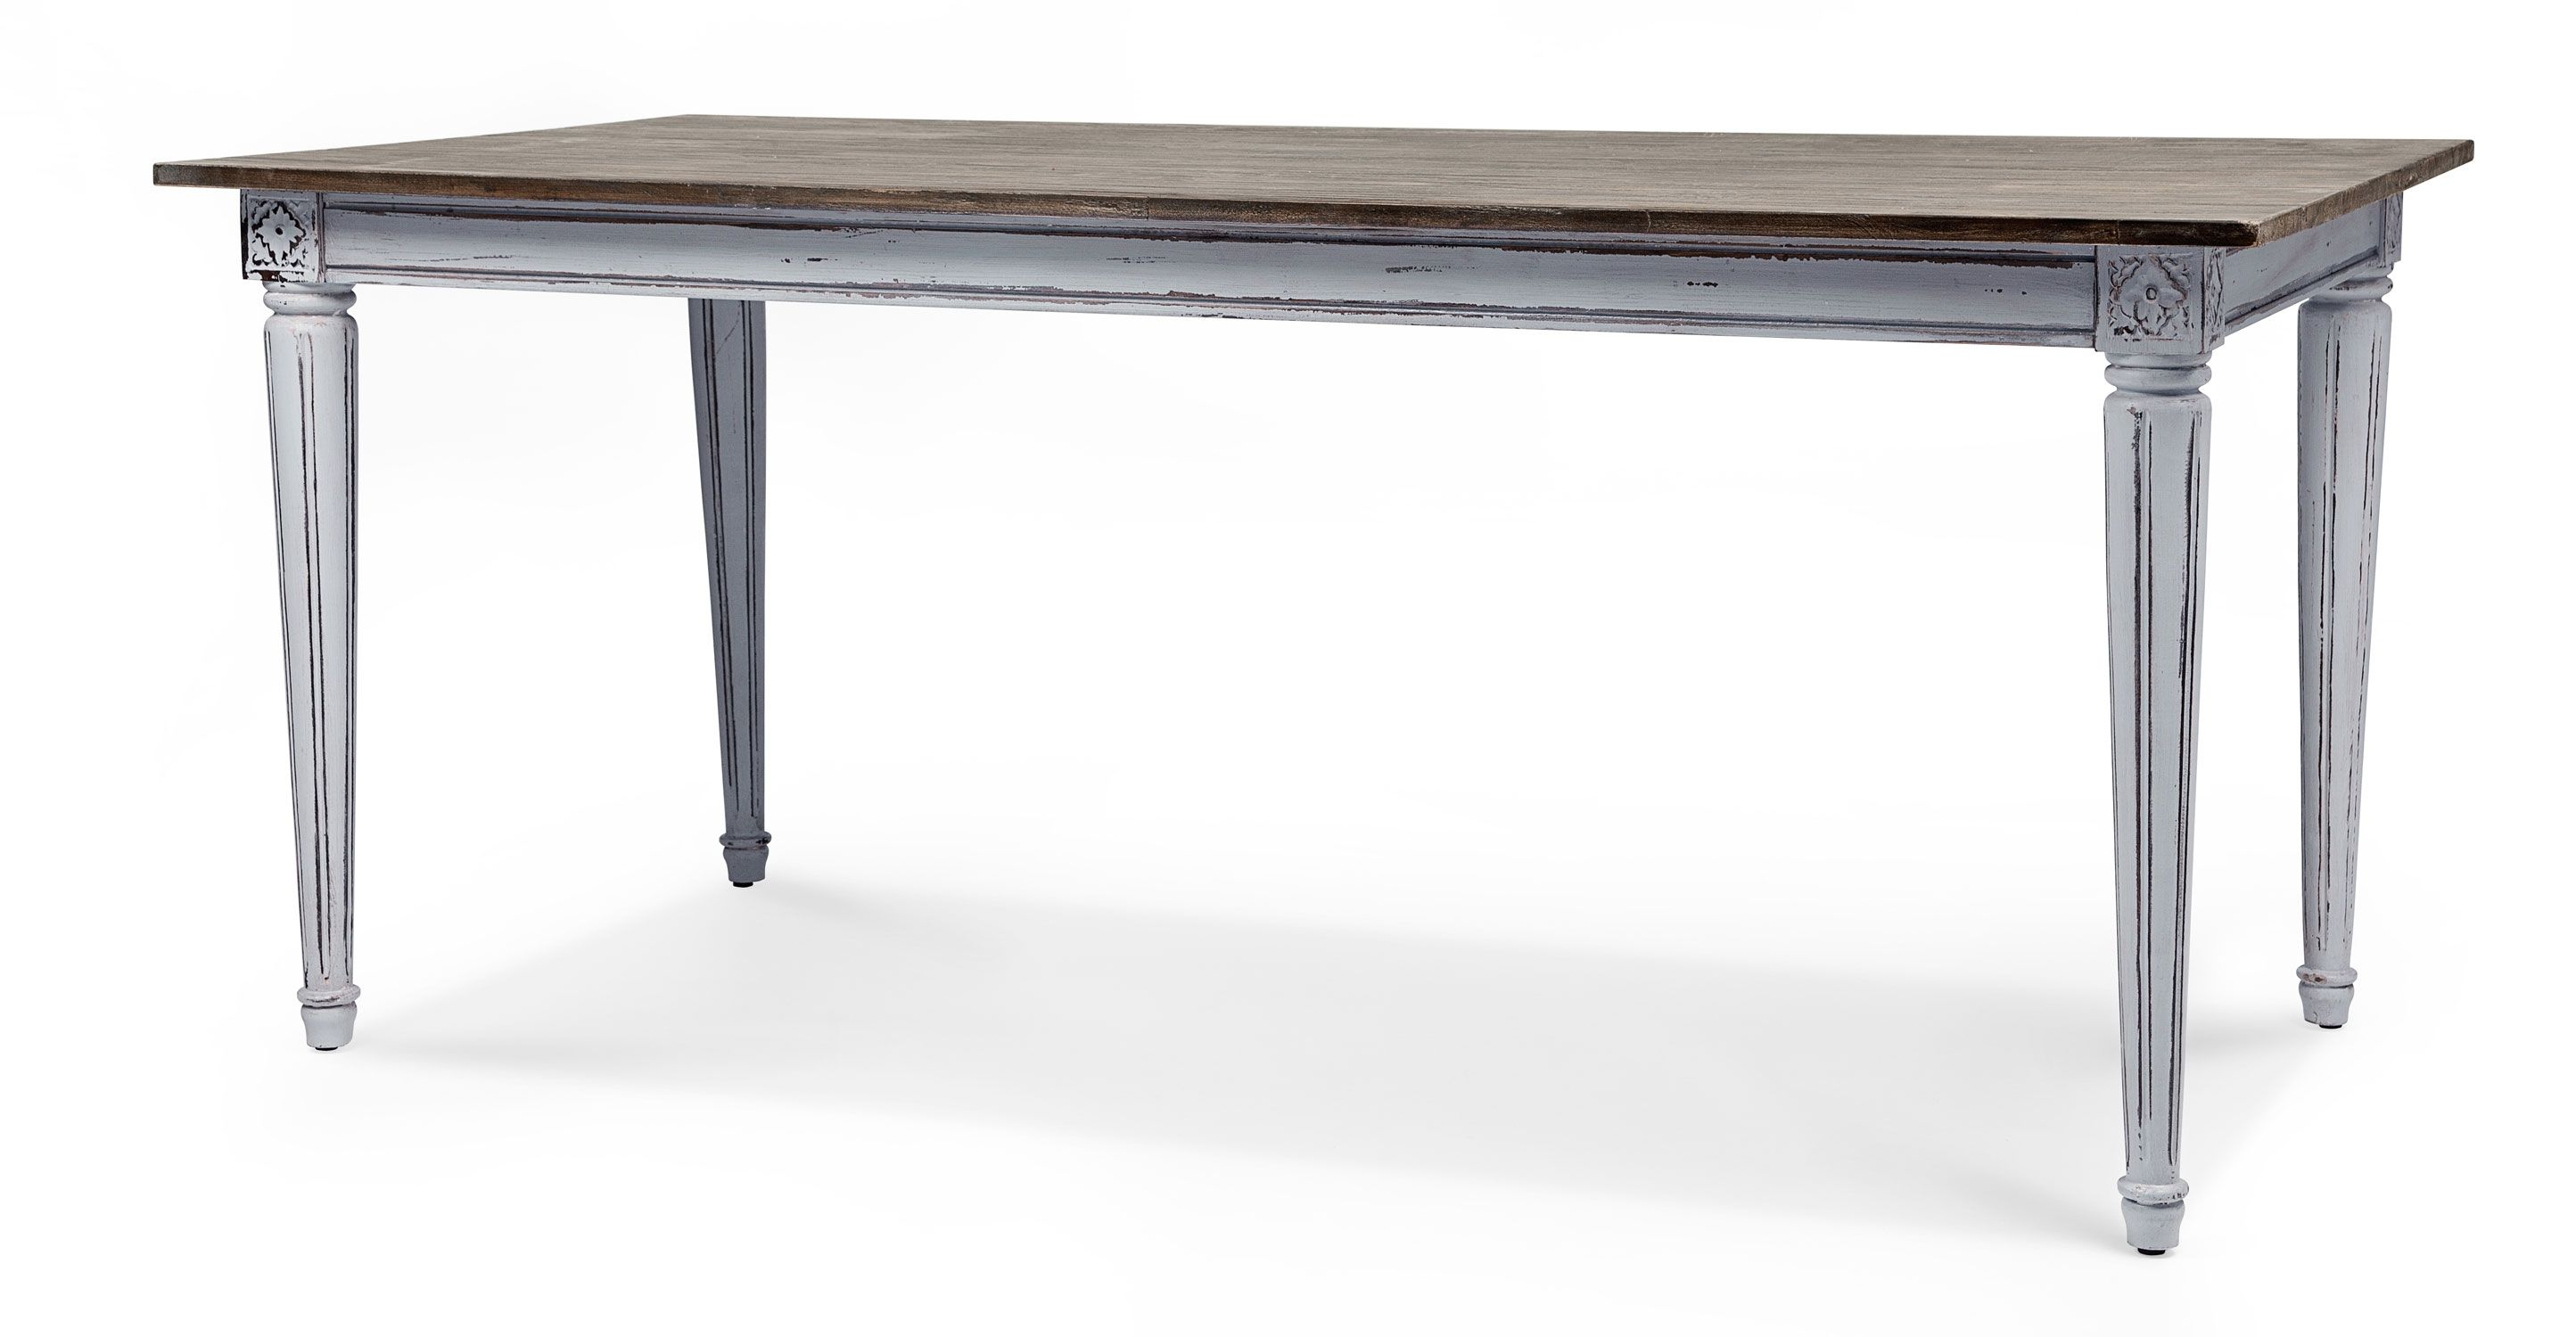 Bourbon Vintage Dining Table Distressed Grey Vintage Dining Table Dining Table In Kitchen Dining Table Design